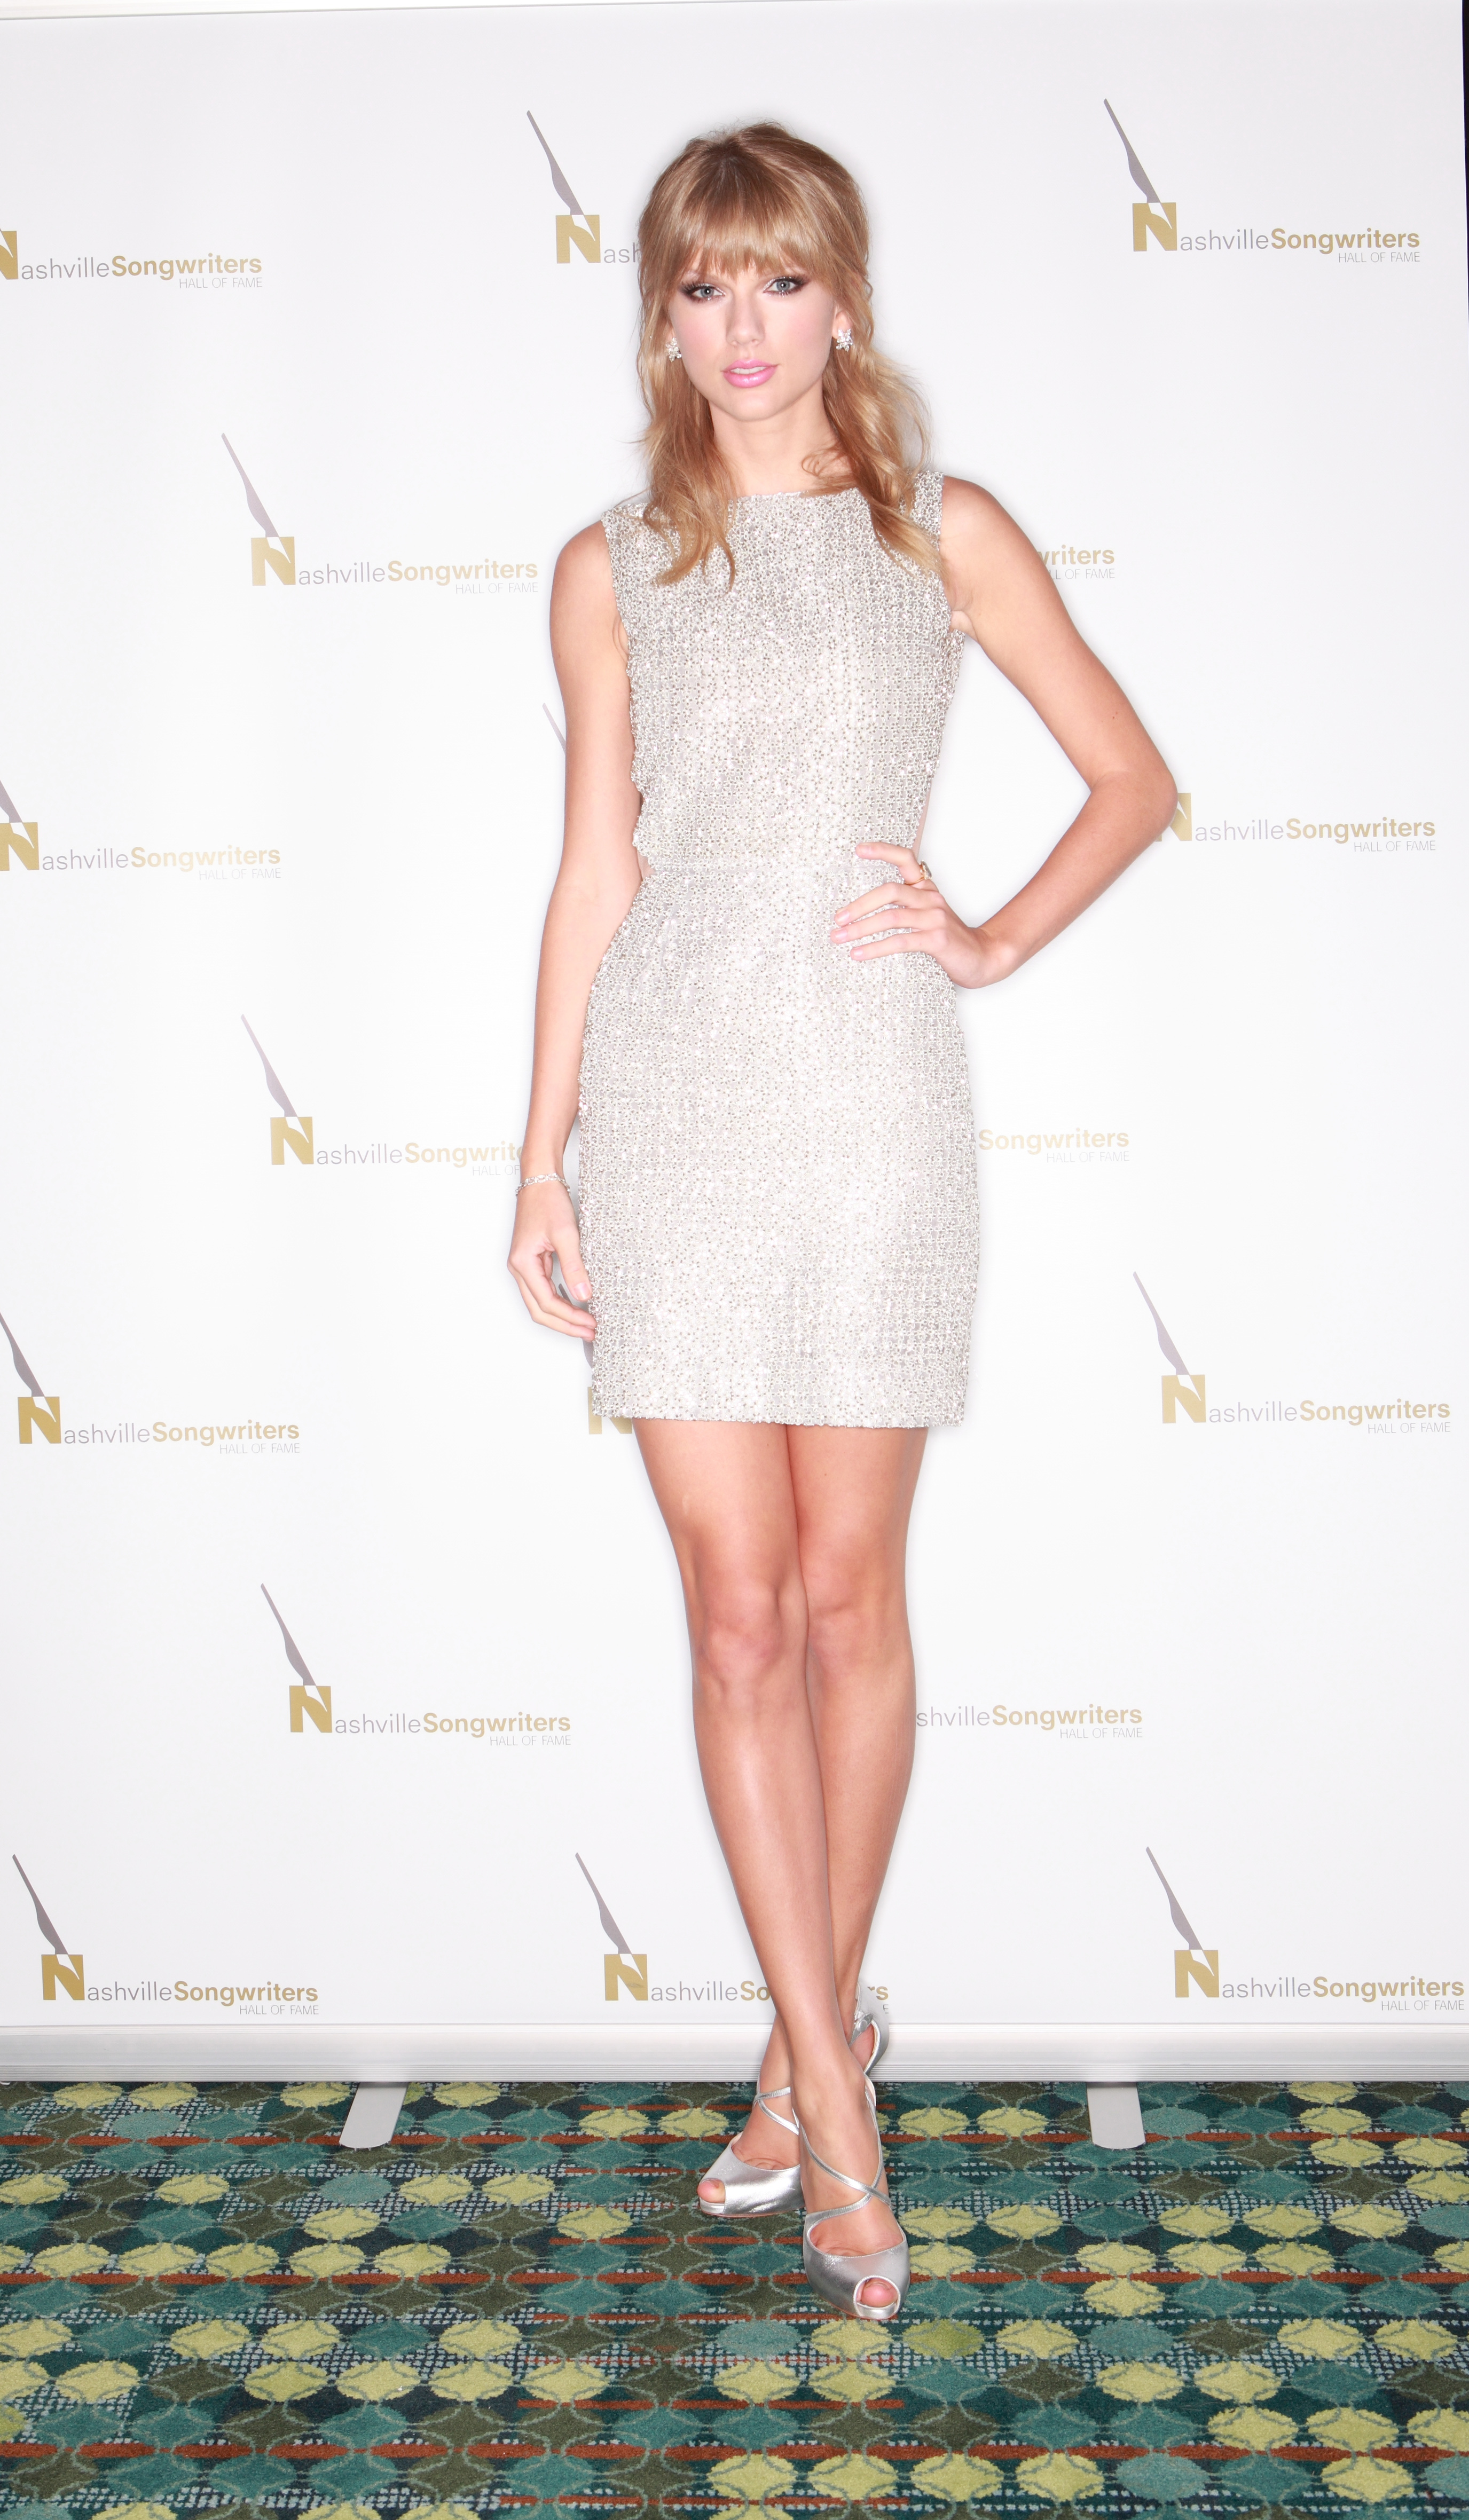 http://www.taylorpictures.net/albums/app/2013/nashvillesongwritershalloffameinductionceremony/006.jpg